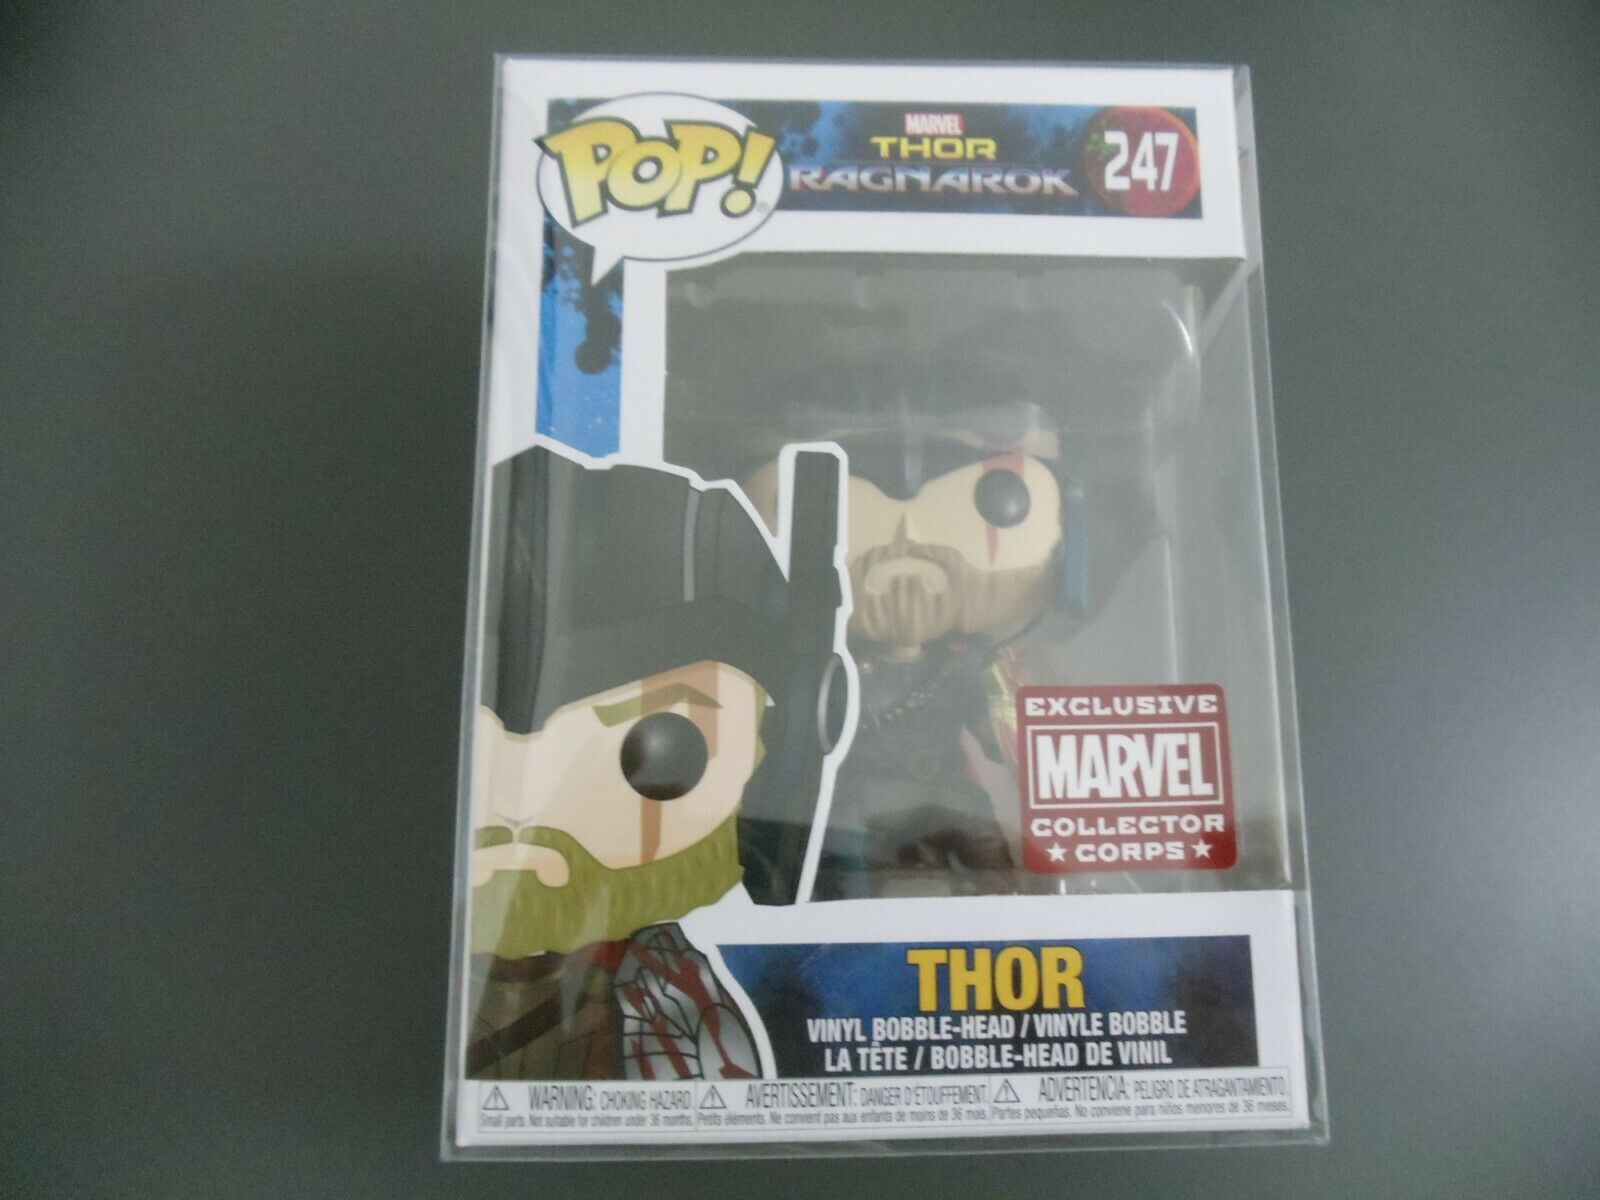 FUNKO POP THOR 247 Thor Ragnarok Marvel Collector Corp Exclusive